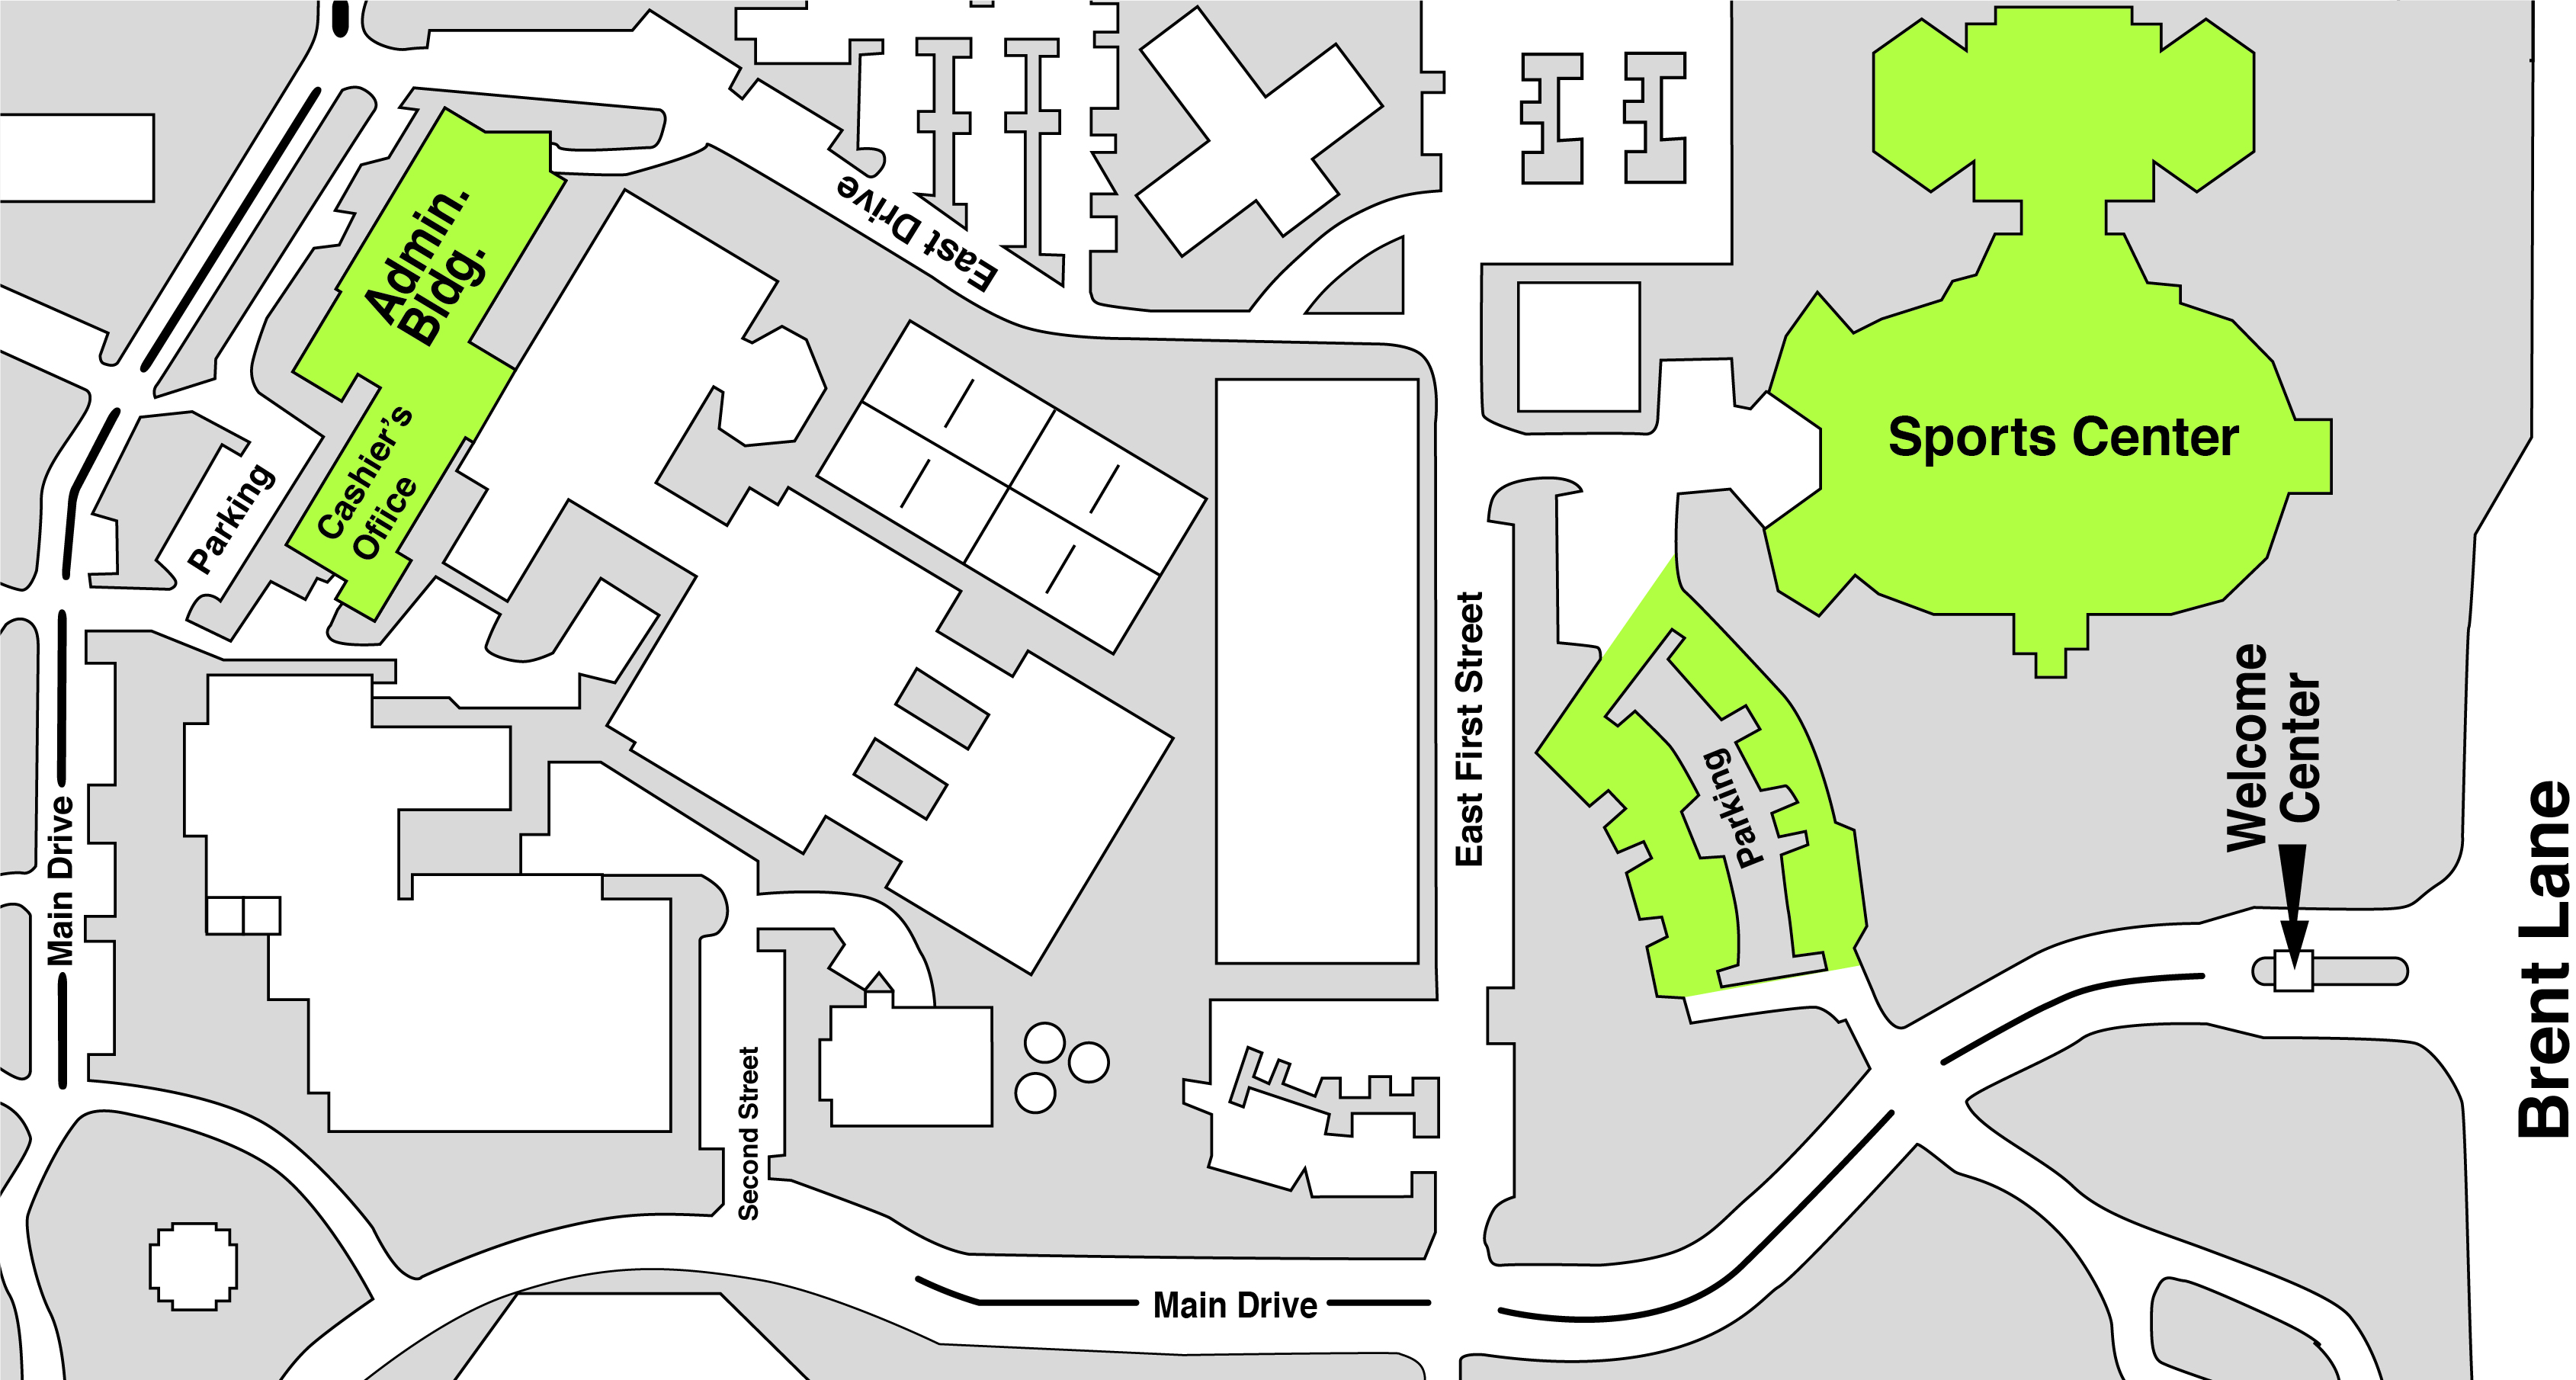 Sports Center Day Camp Map